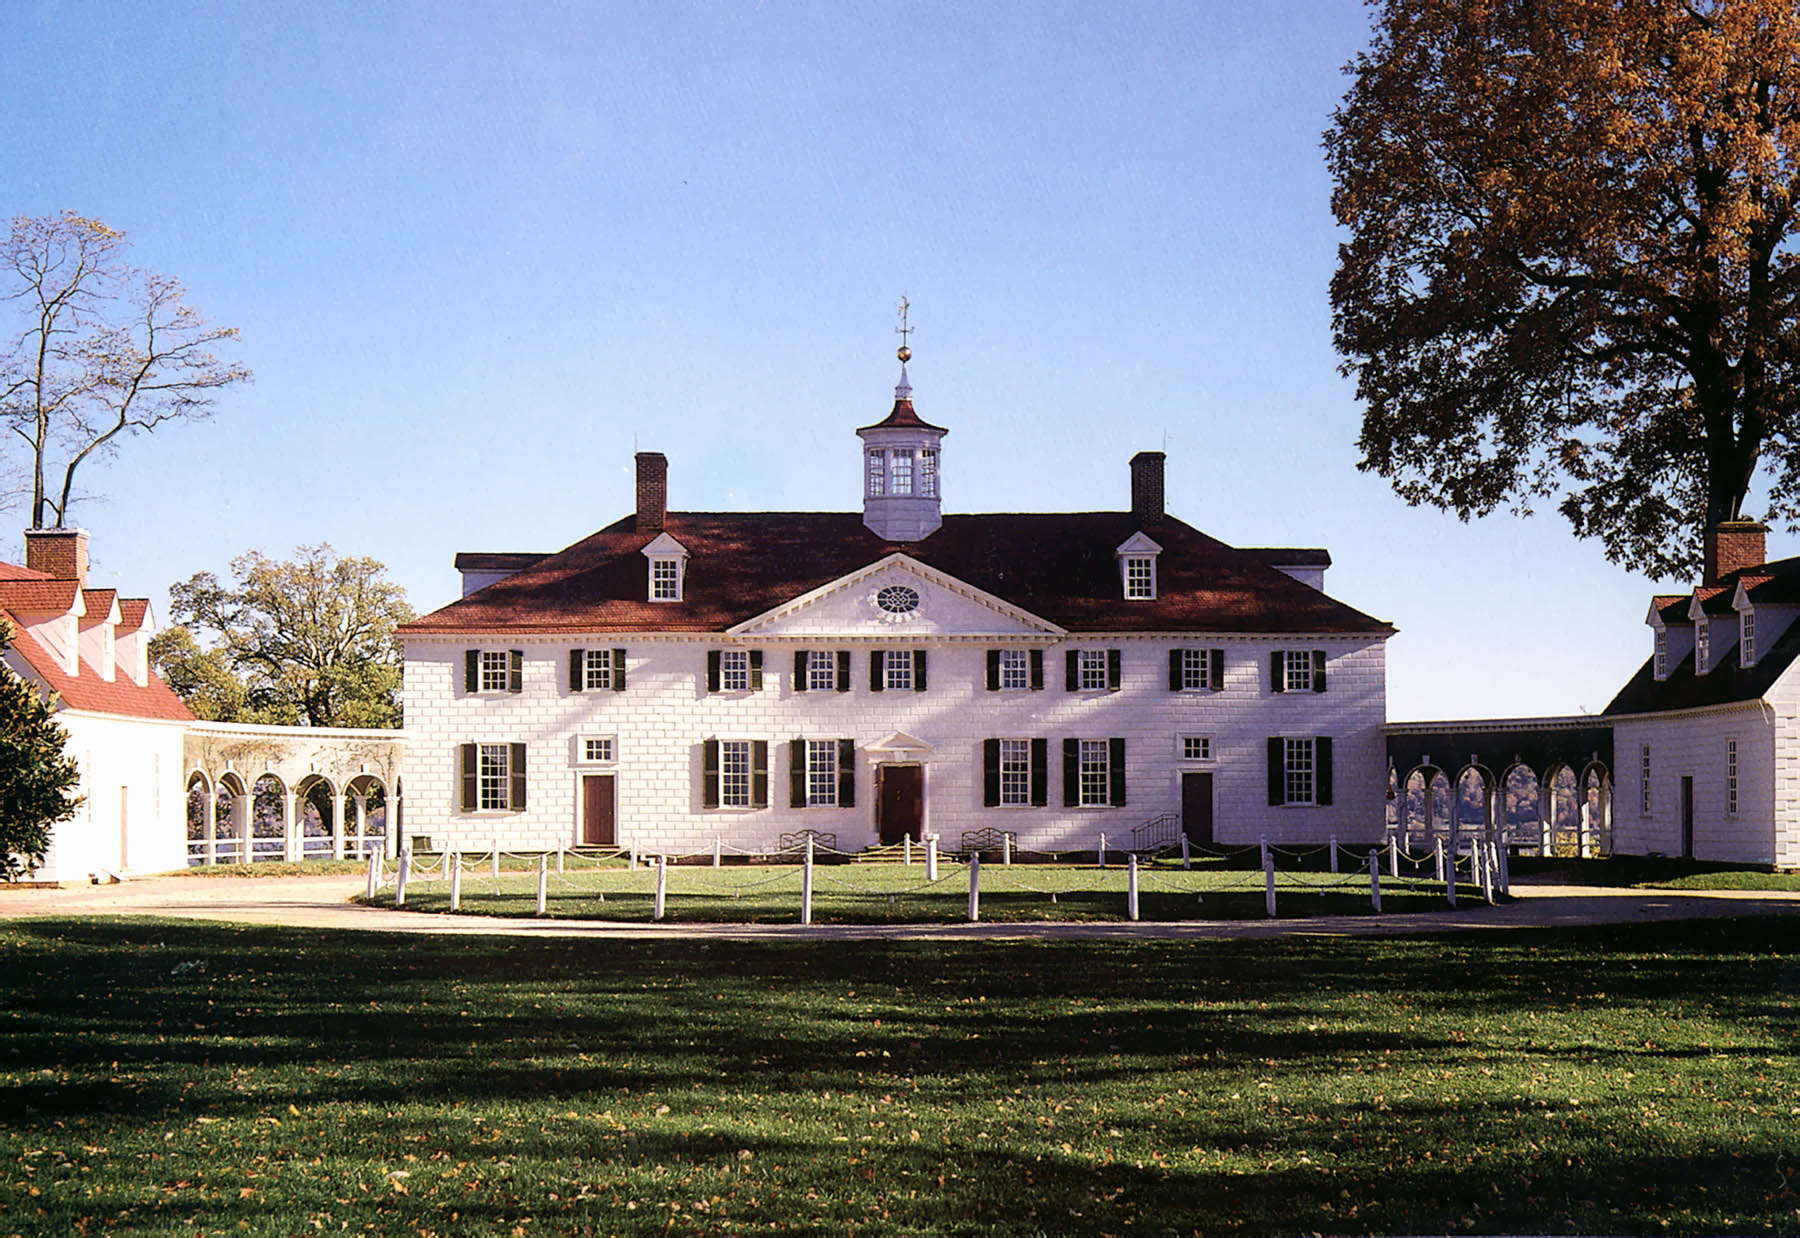 Visit george washington s mount vernon estate citybuzz for George washington plantation